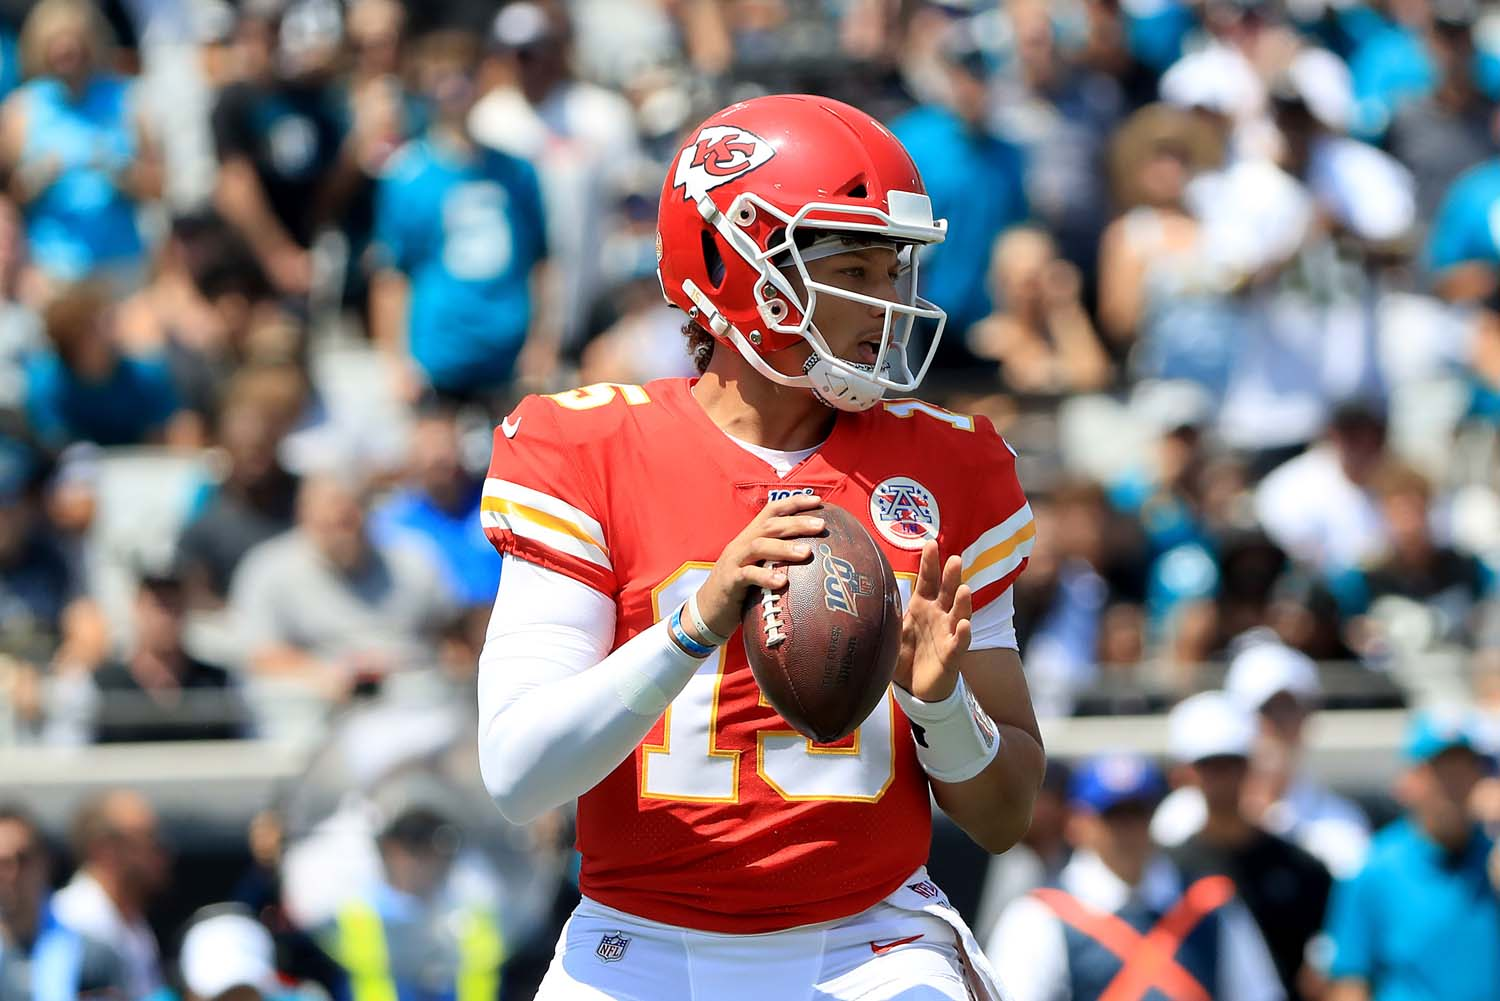 Patrick Mahomes (15) of the Kansas City Chiefs attempts a pass during the game against the Jacksonville Jaguars at TIAA Bank Field on Sept. 8  in Jacksonville, Florida.